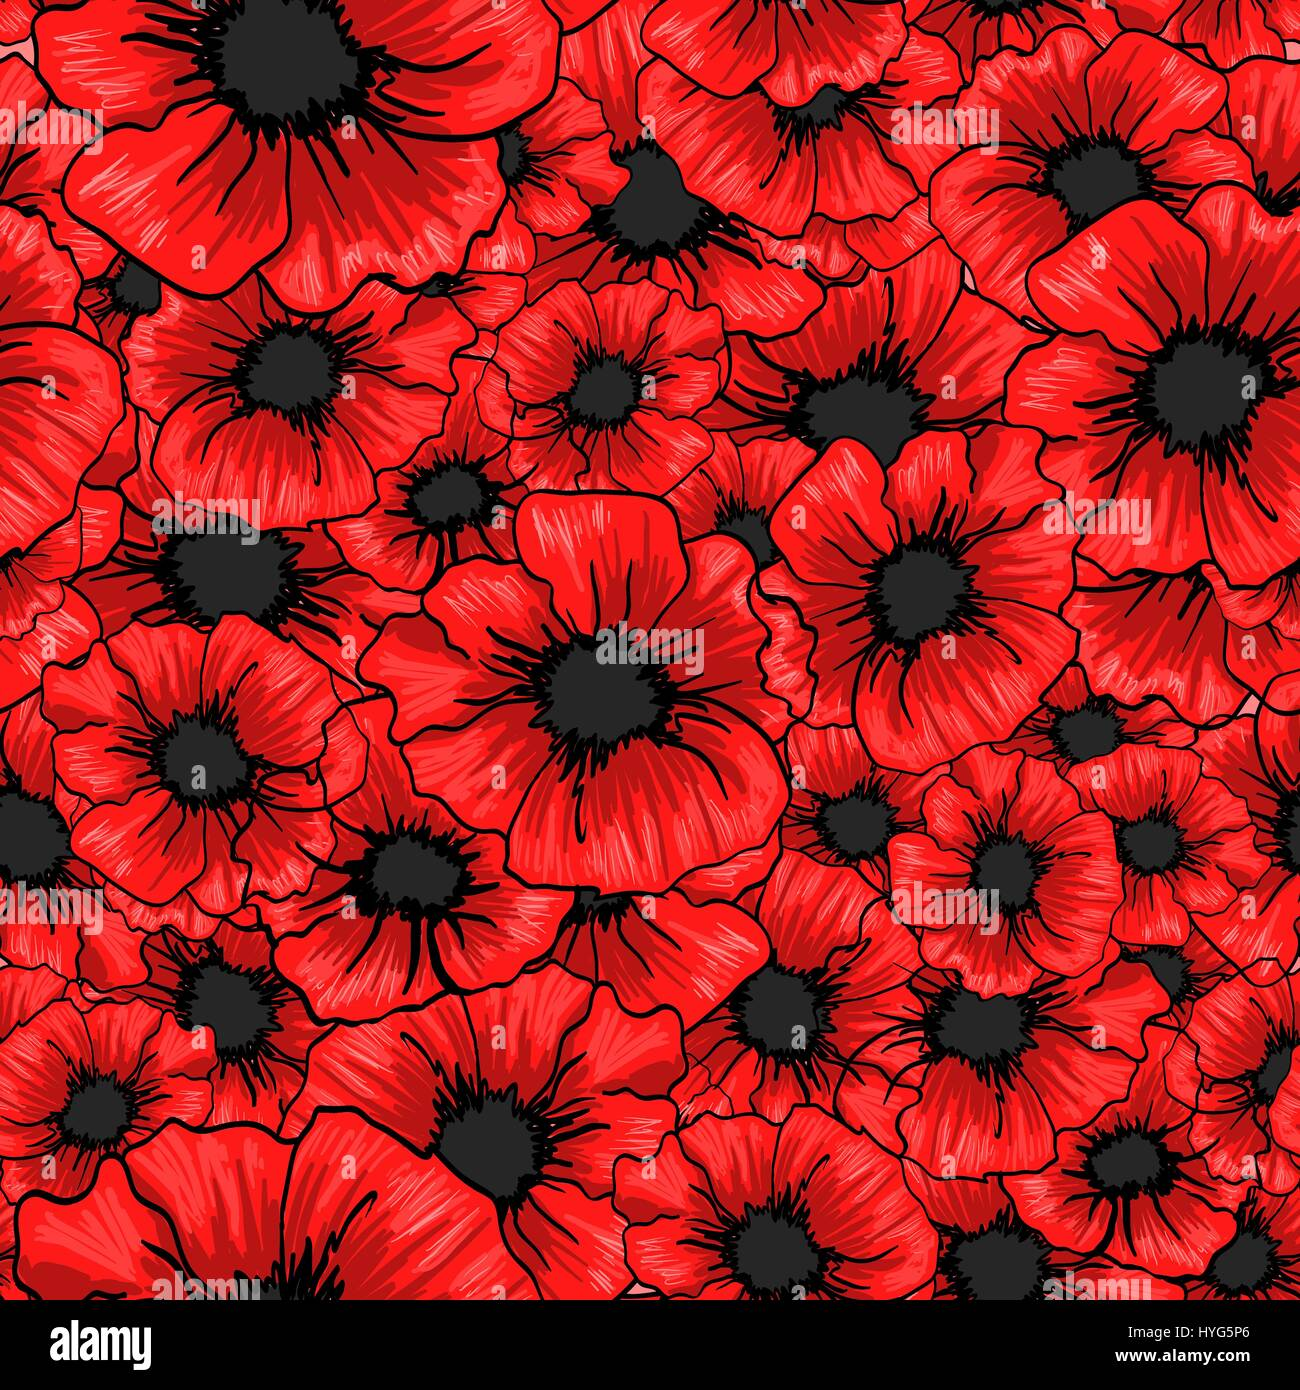 Red Poppy Flower Seamless Pattern For Fabric Textile Design Stock